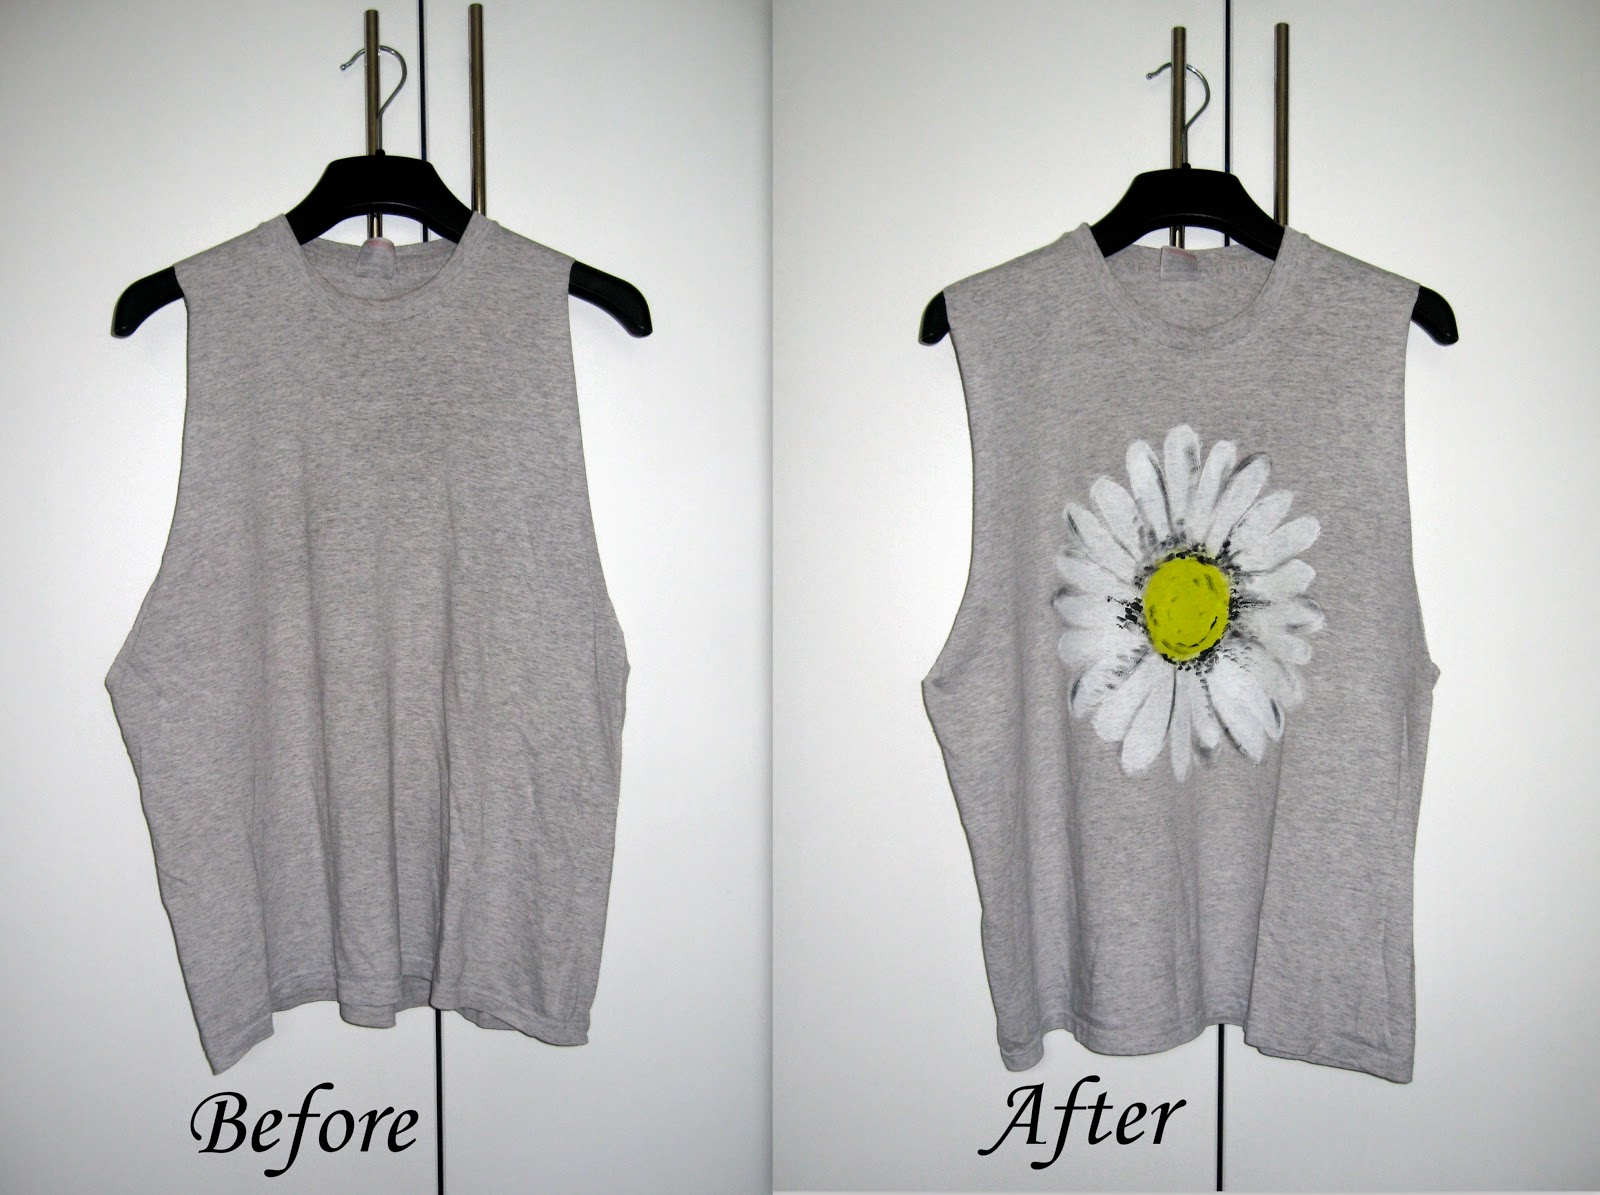 daisy print t-shirt from urban outfiters inspired DIY, DIY t shirt tee top, daisy print top DIY, black top with white daisy print, grey top with white daisy print, DIY